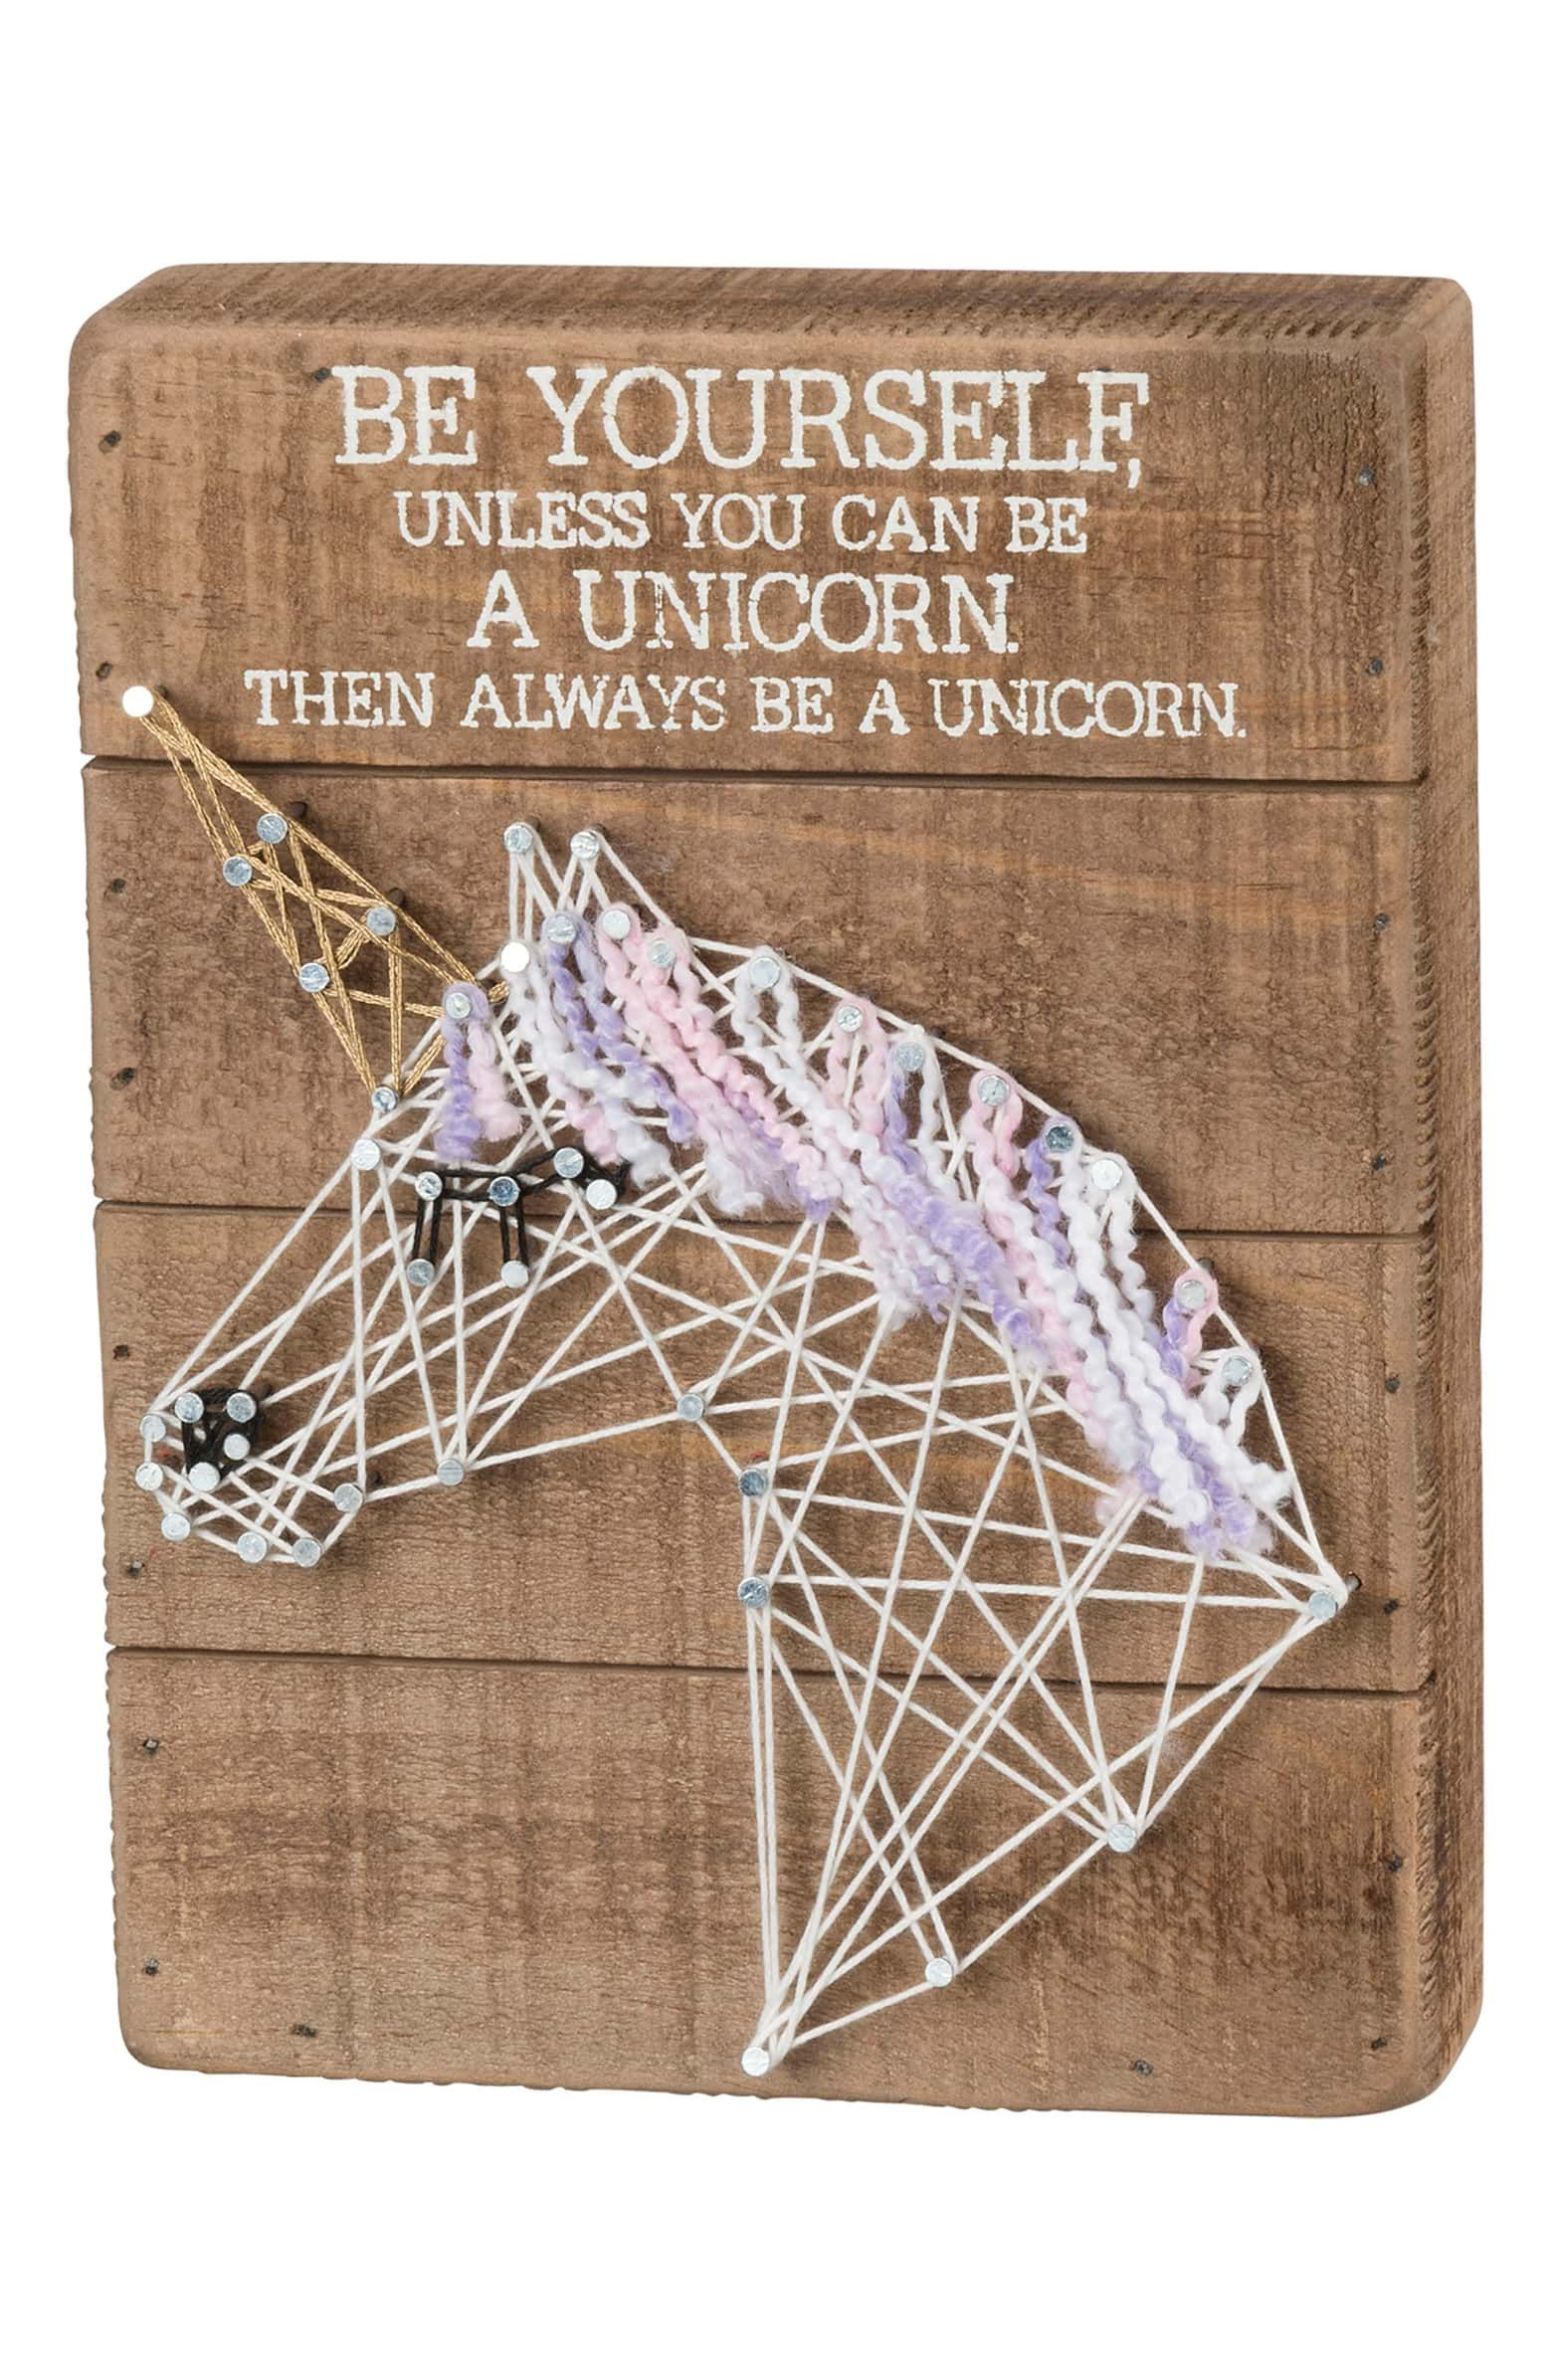 Unicorn String Art Box Sign  Add a whimsical touch to any